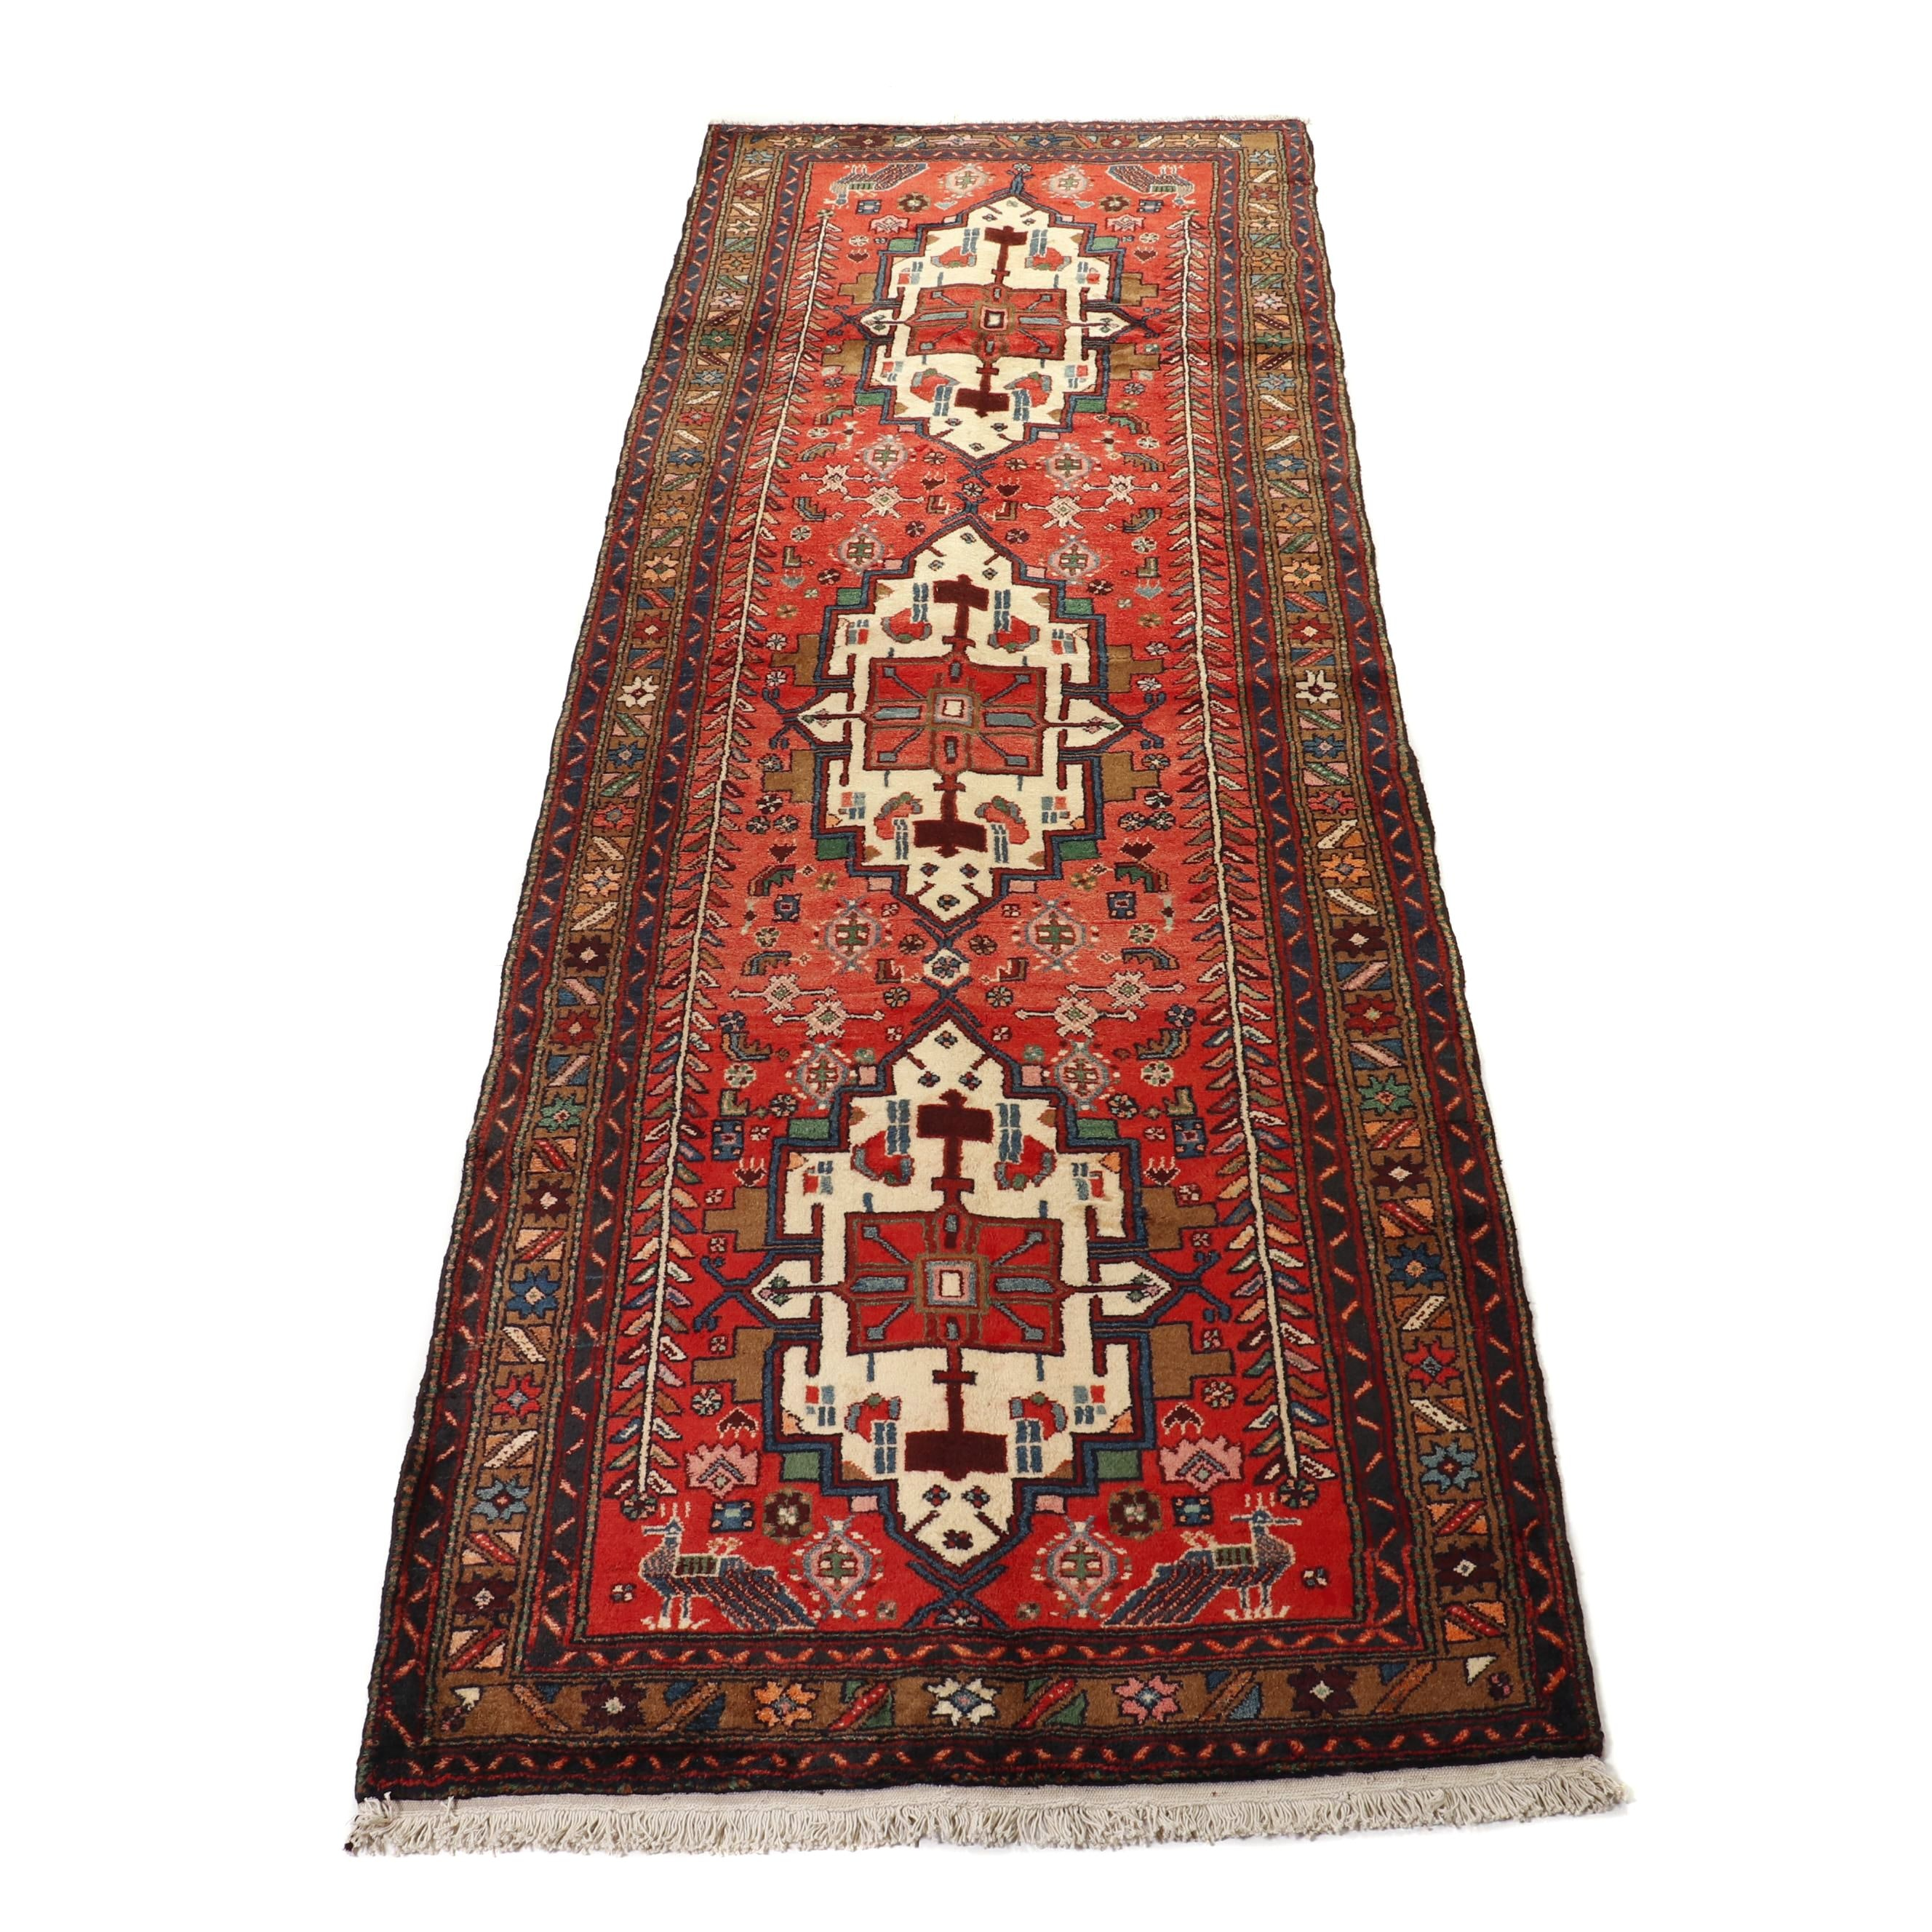 Hand-Knotted Persian Heriz Pictorial Wool Carpet Runner